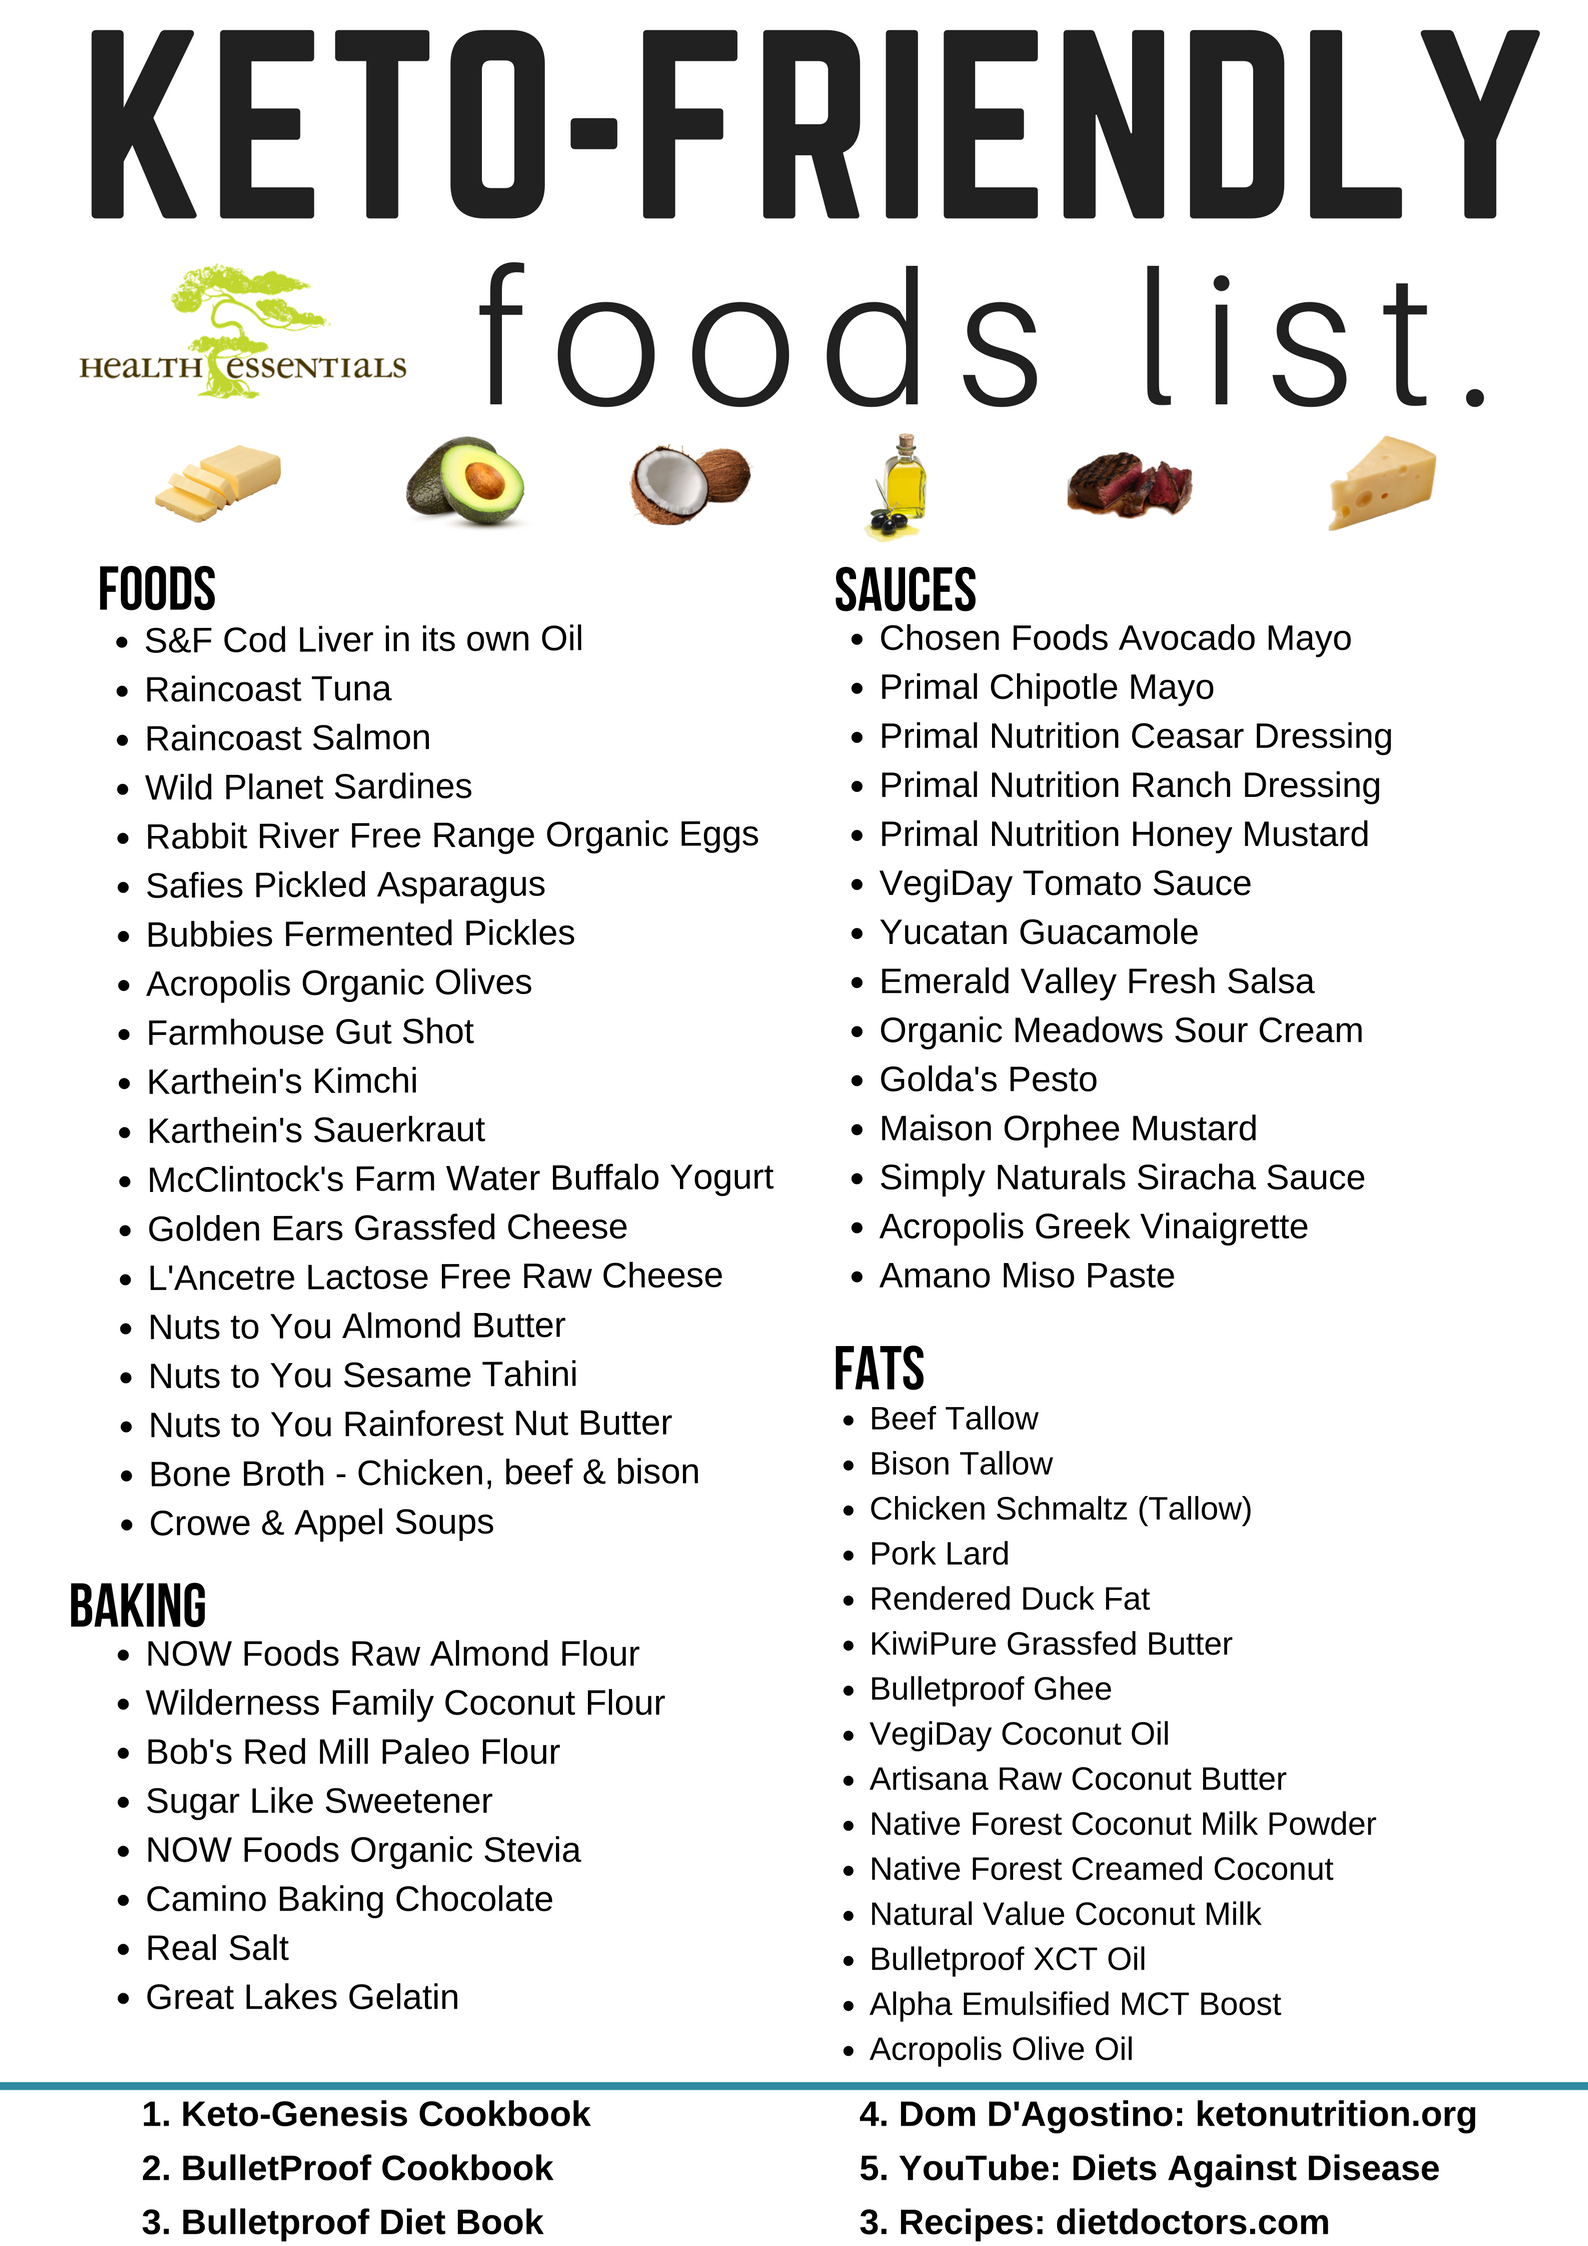 Ketogenic Foods List - Health Essentials